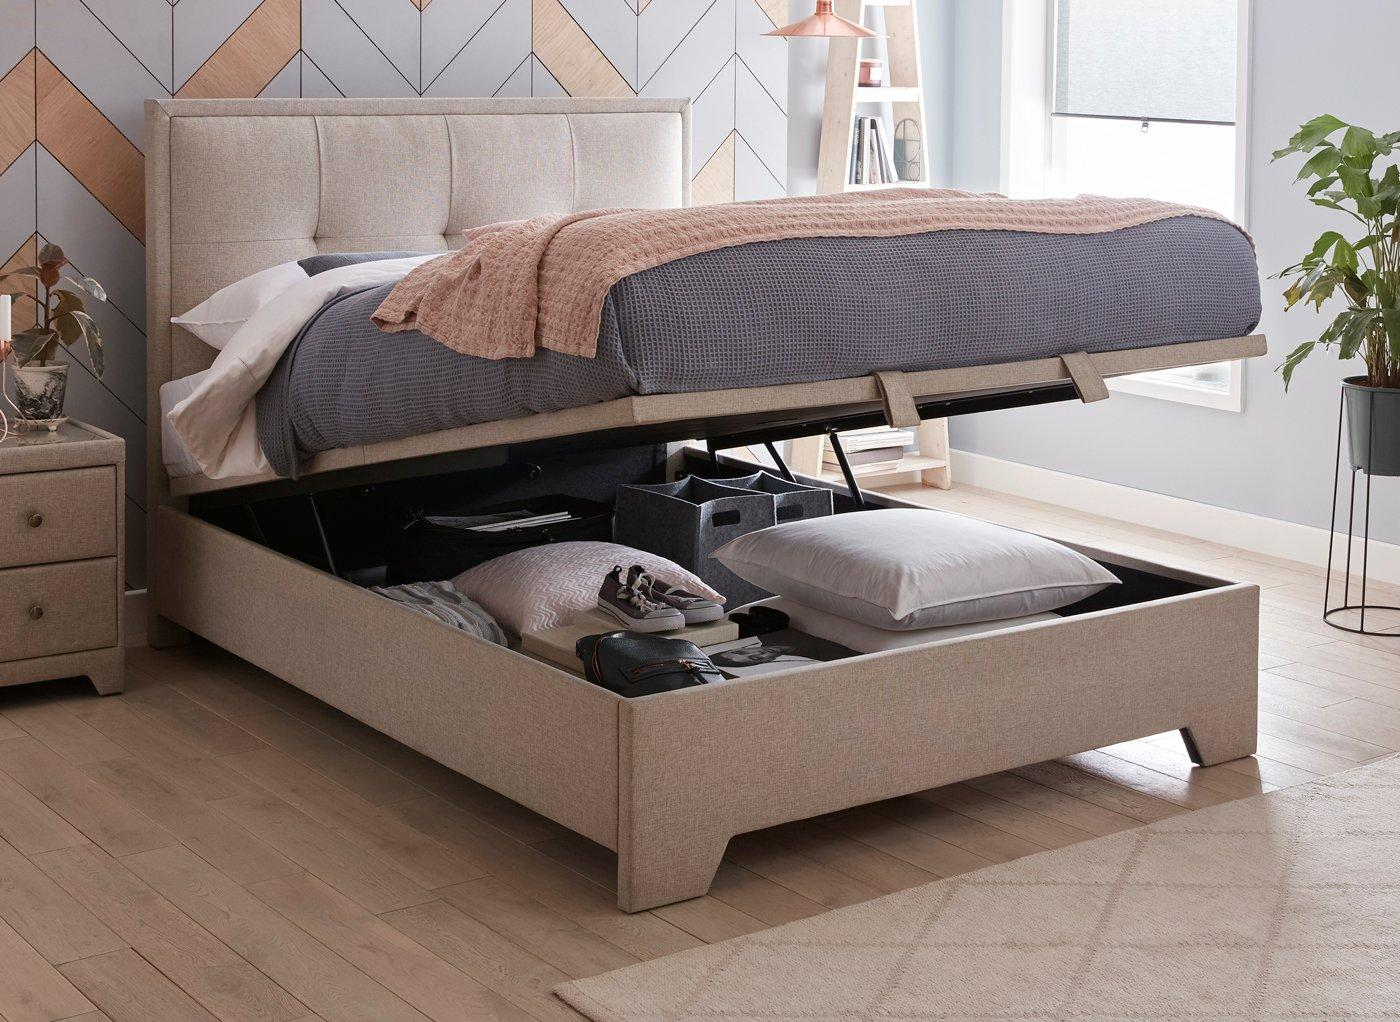 hopkins-fabric-upholstered-ottoman-bed-frame